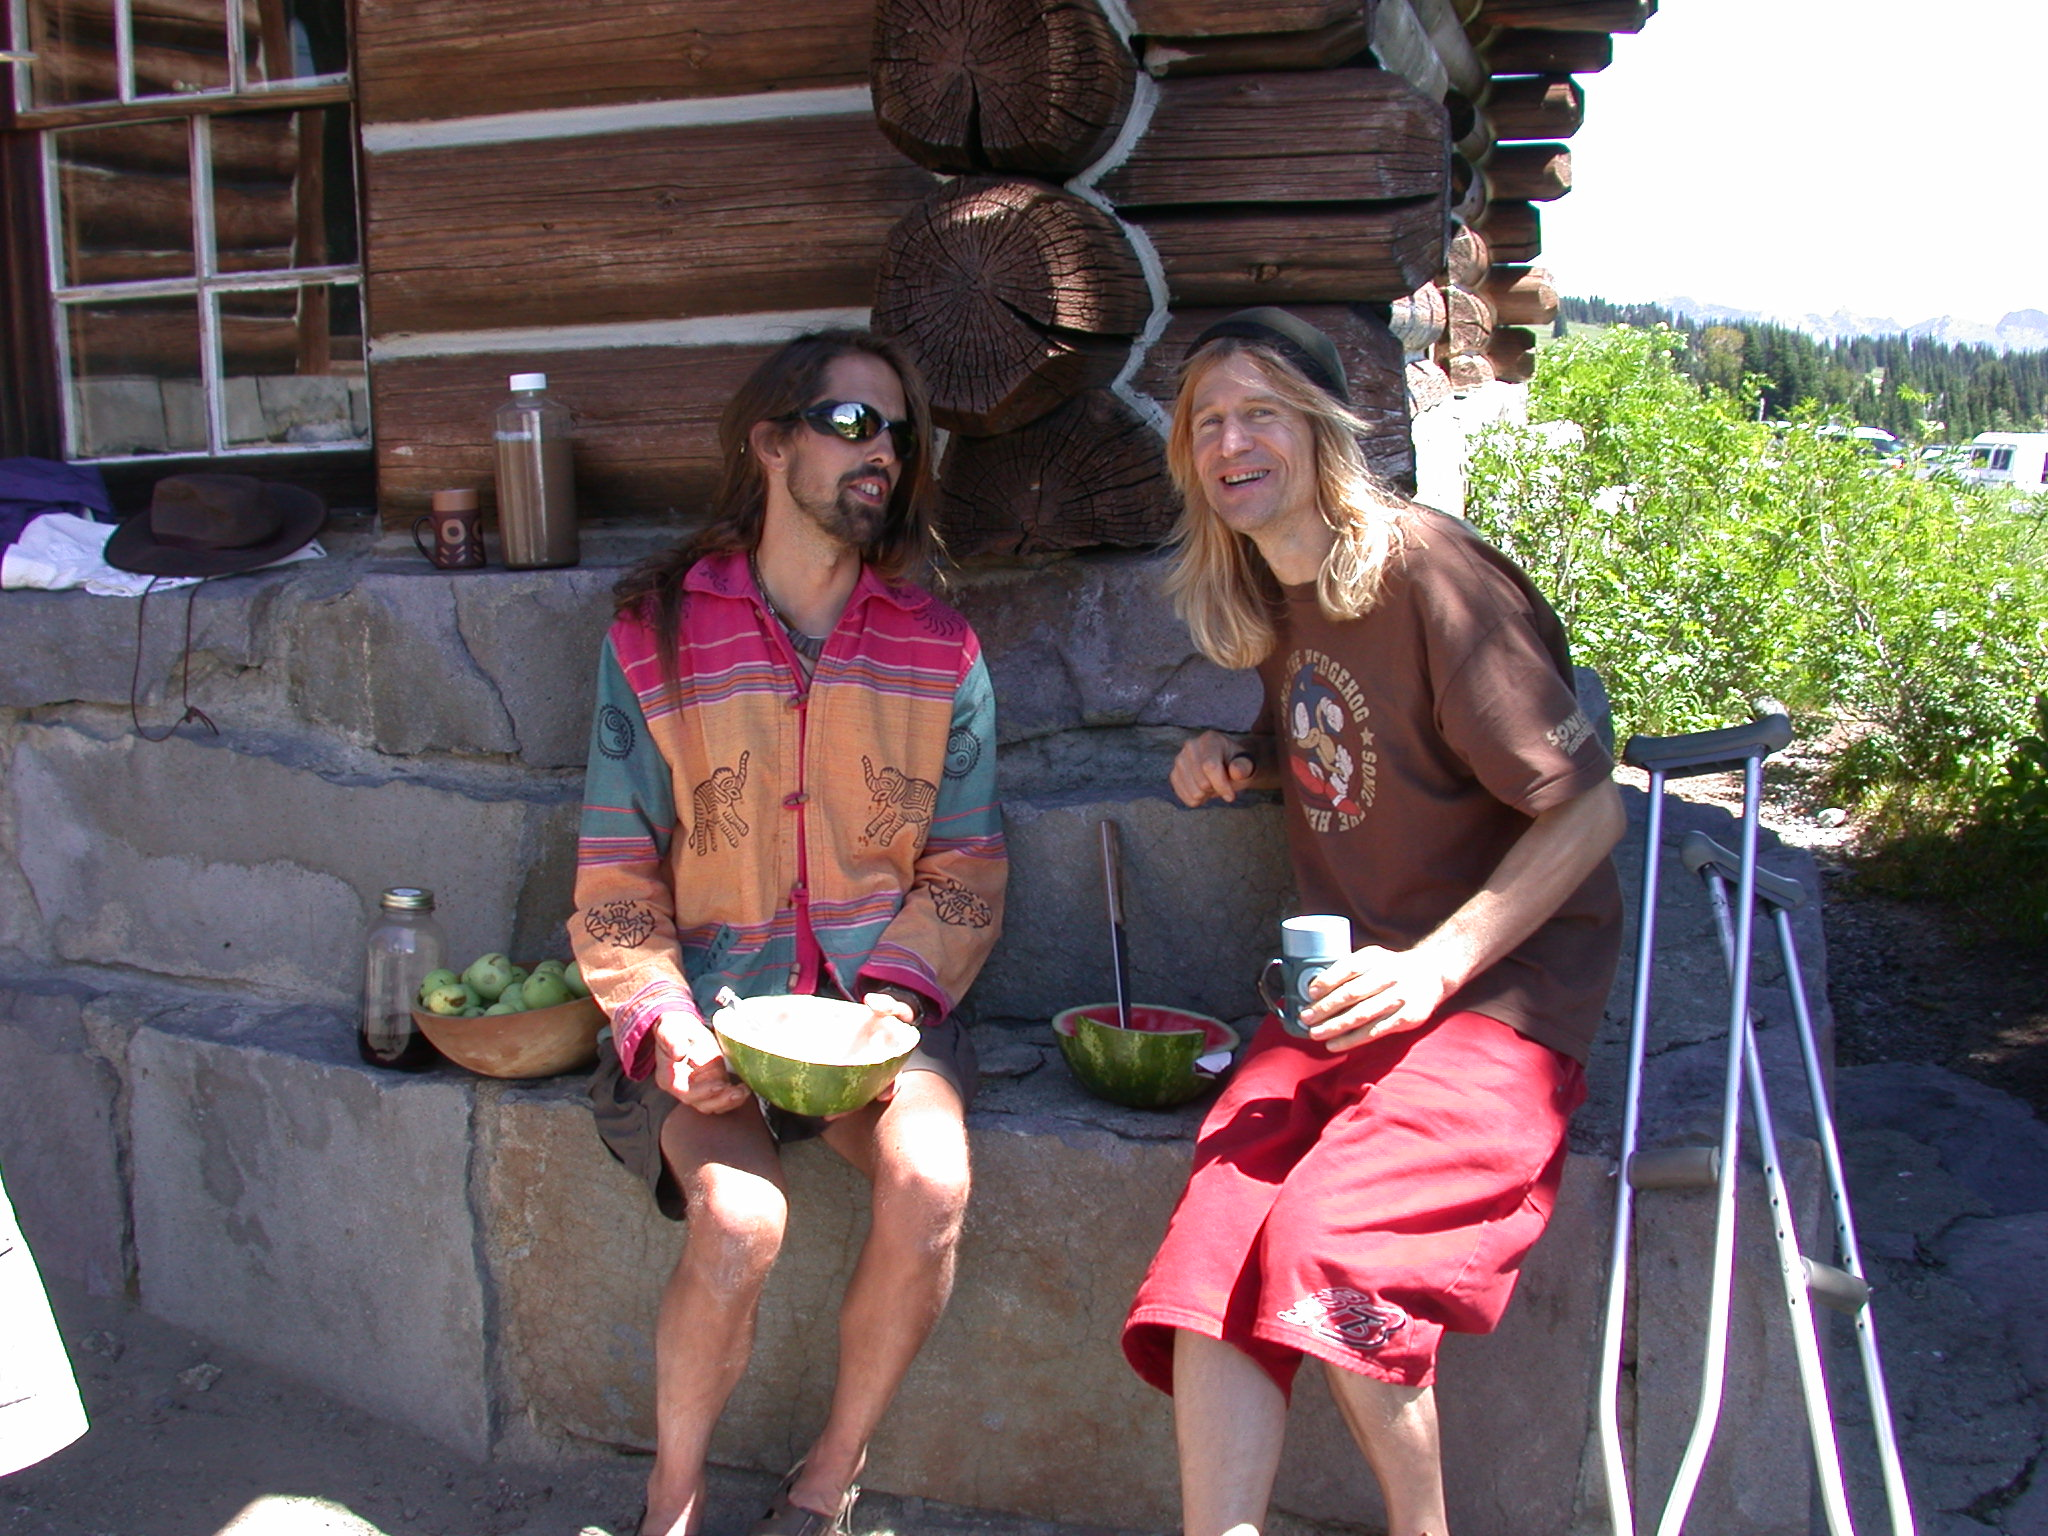 Fruitboy and Kirby at Sunrise Camp Employee Residence on Mount Rainier